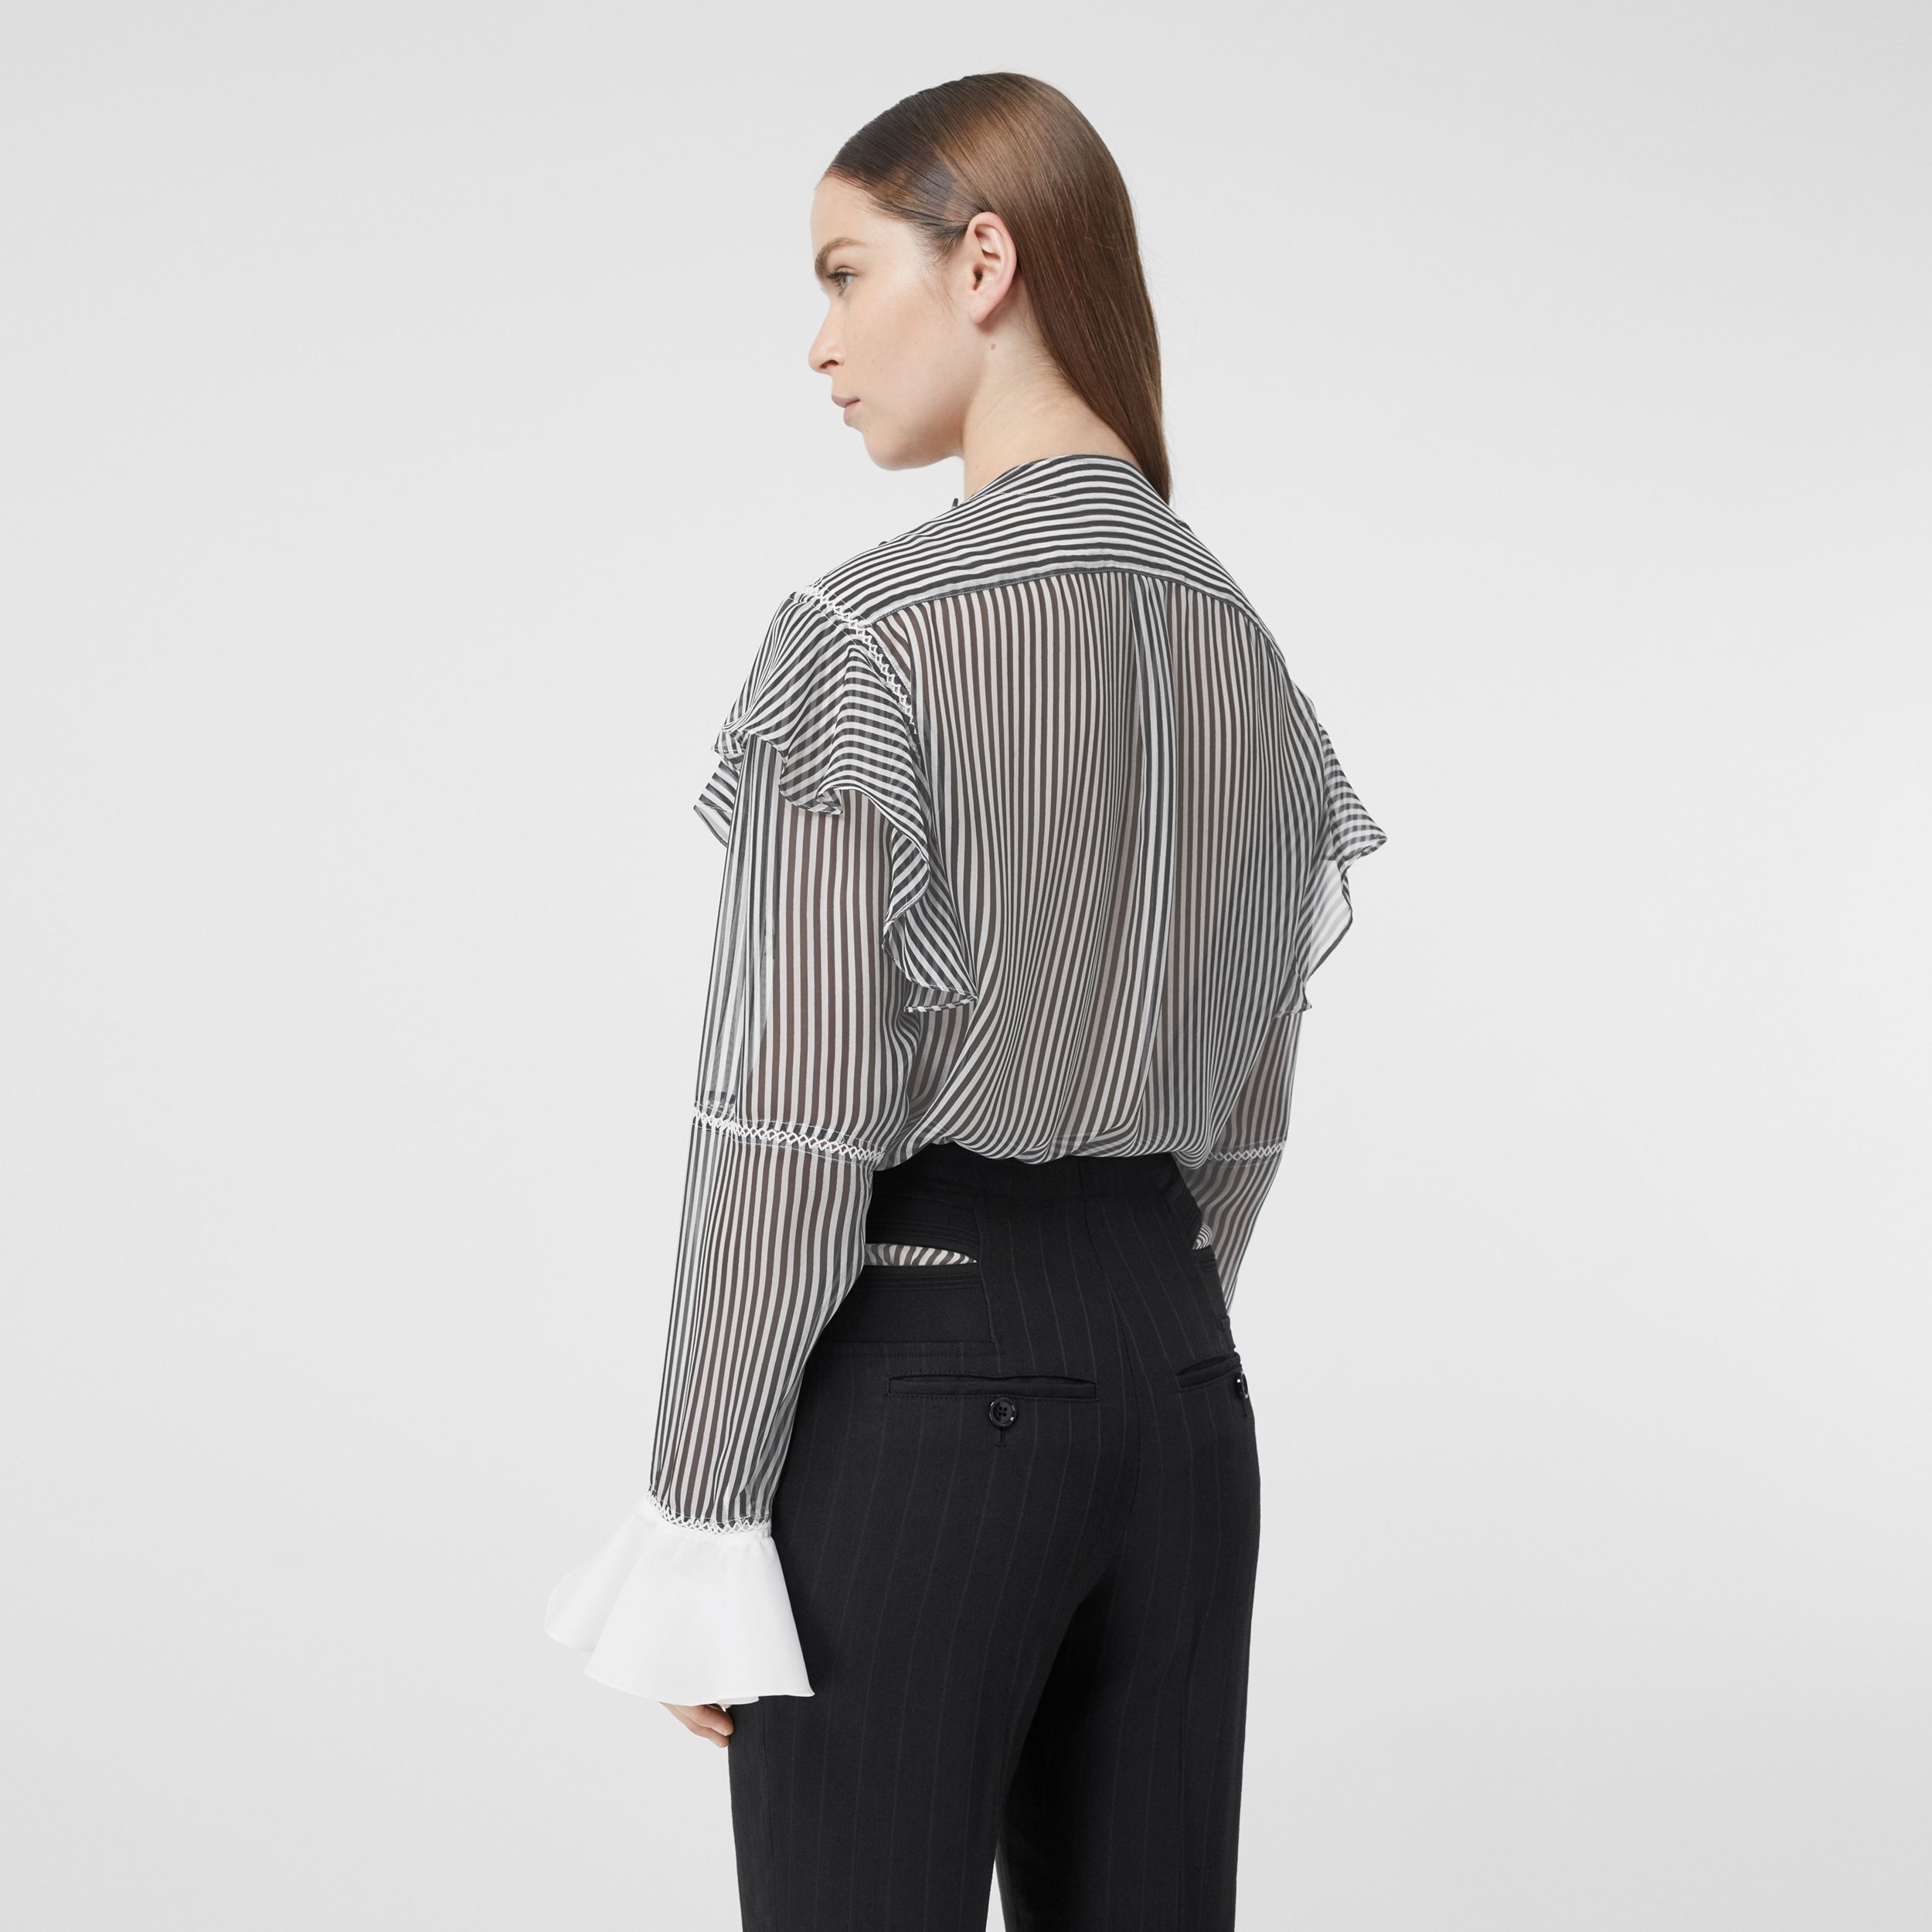 Ruffle Detail Striped Silk Chiffon Shirt in Black - Women | Burberry Canada - 3